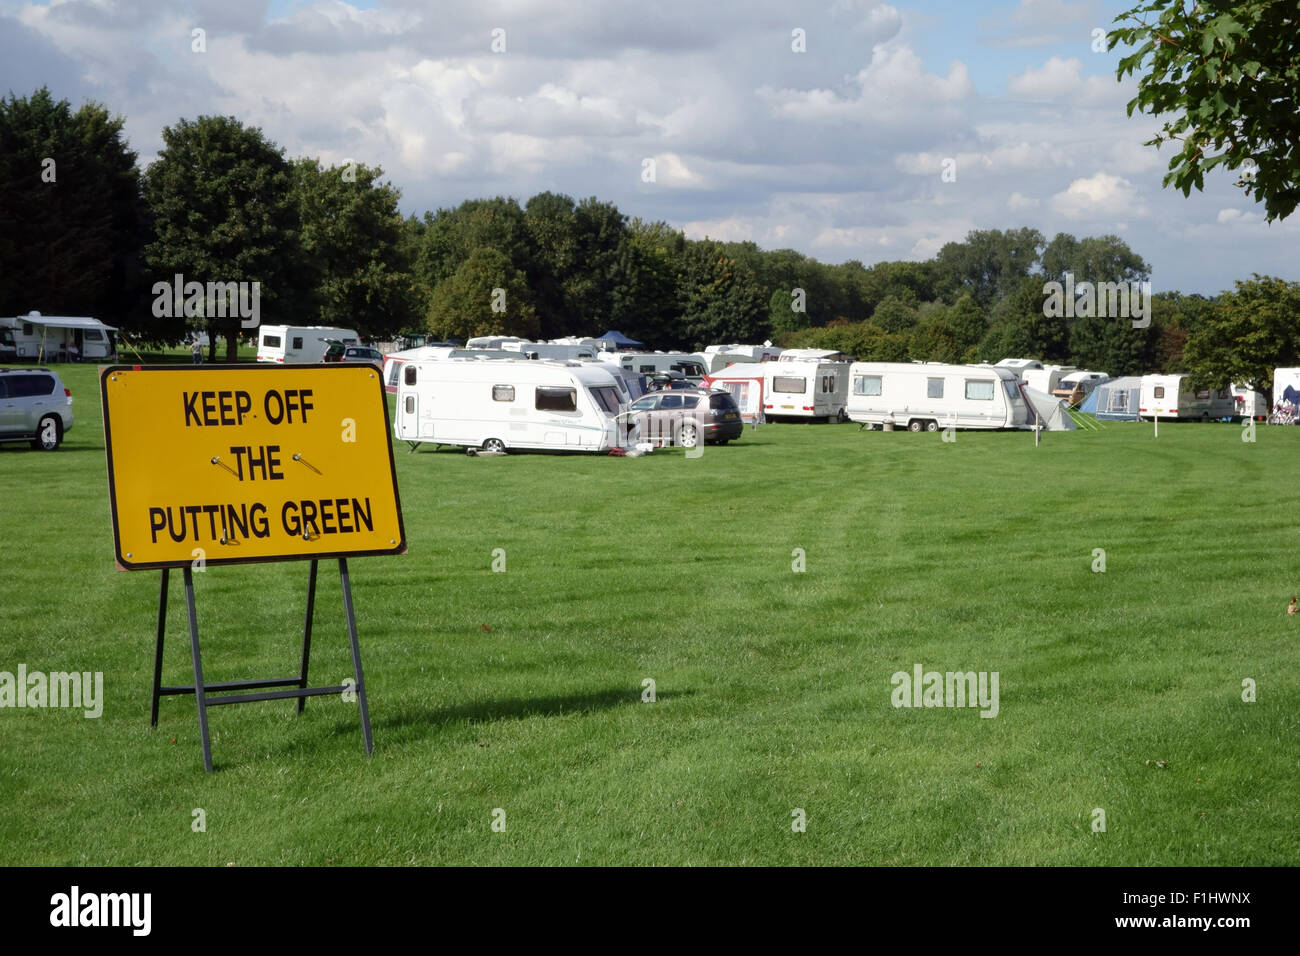 Caravans Parked On Burghley Golf Club For Burghley Landrover Horse